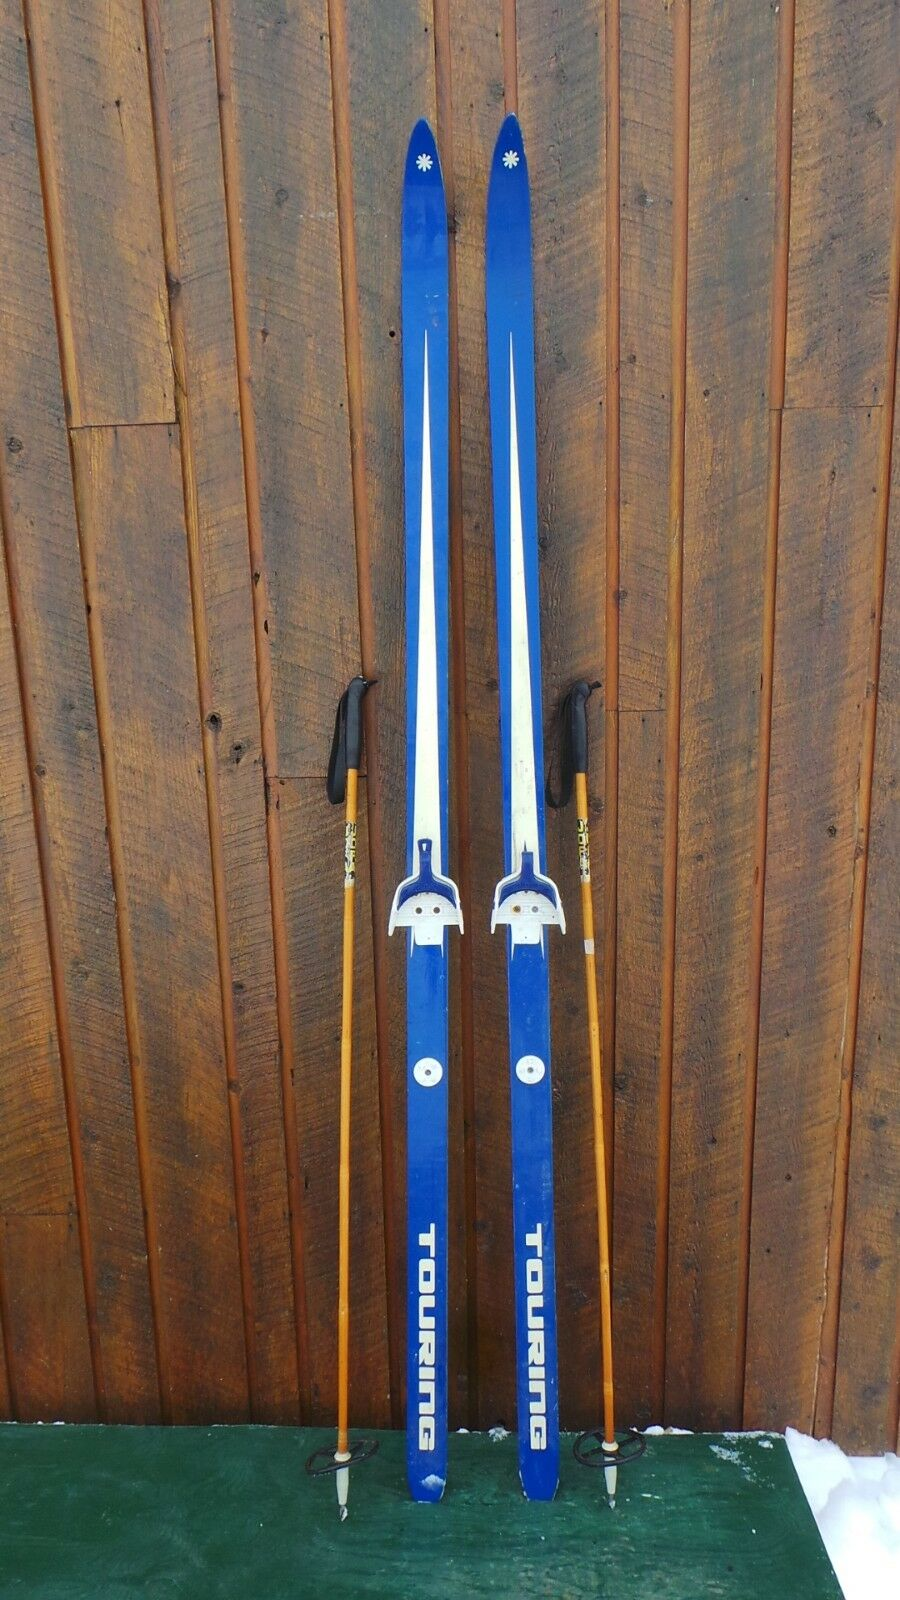 GREAT Wooden 79  Skis Has   bluee and White Finish + Bamboo Poles  designer online